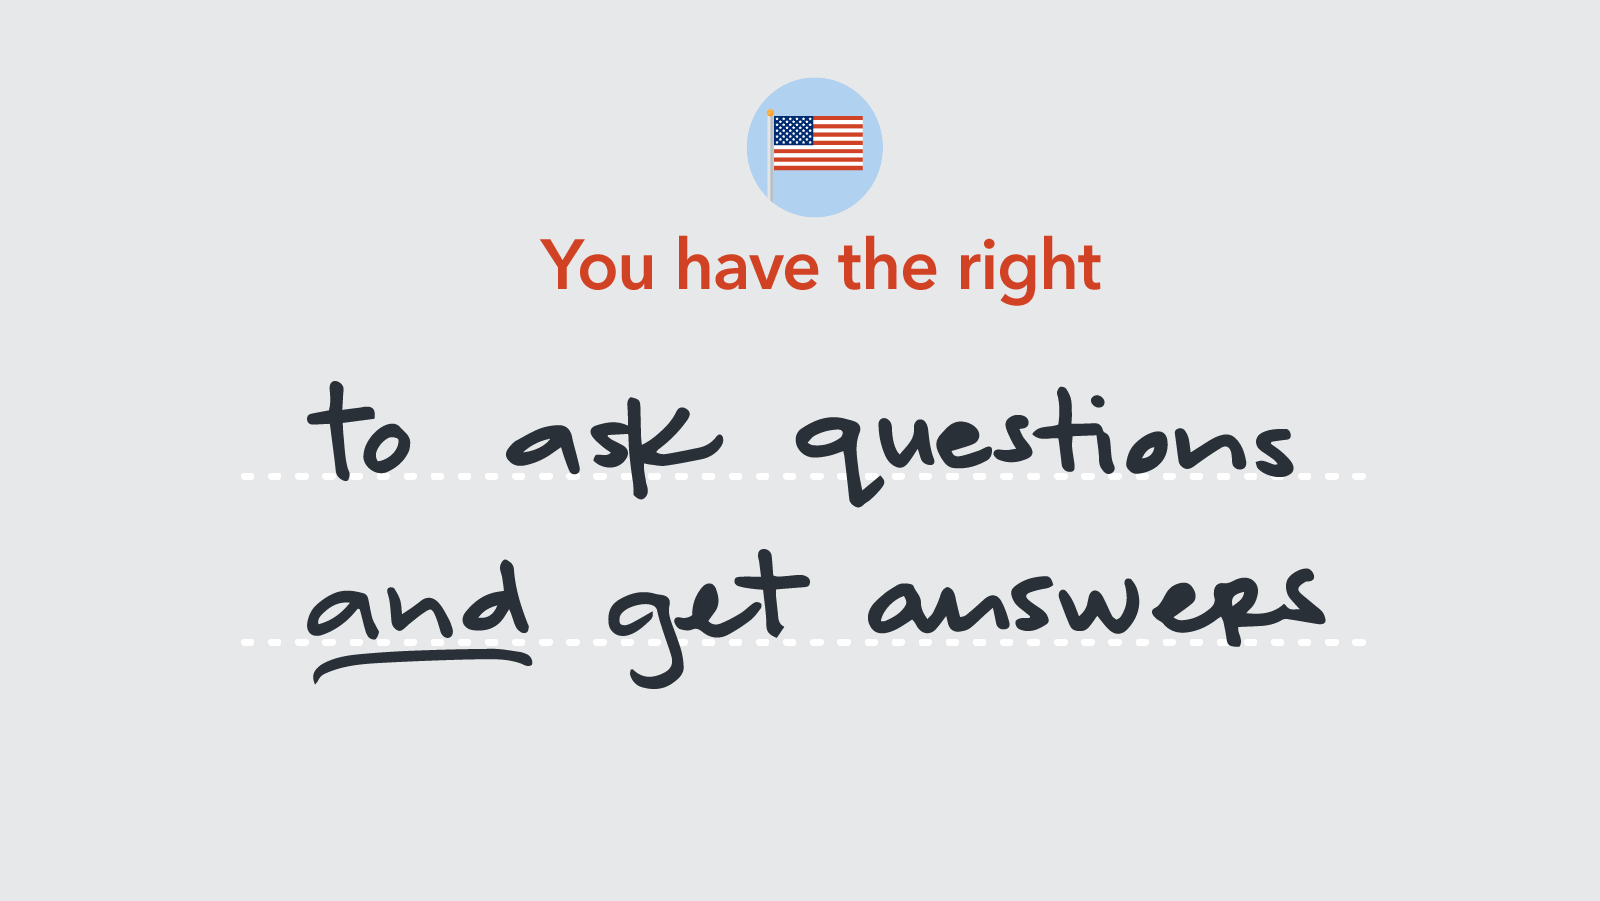 Graphic of handwriting saying: You have the right to ask questions and get answers